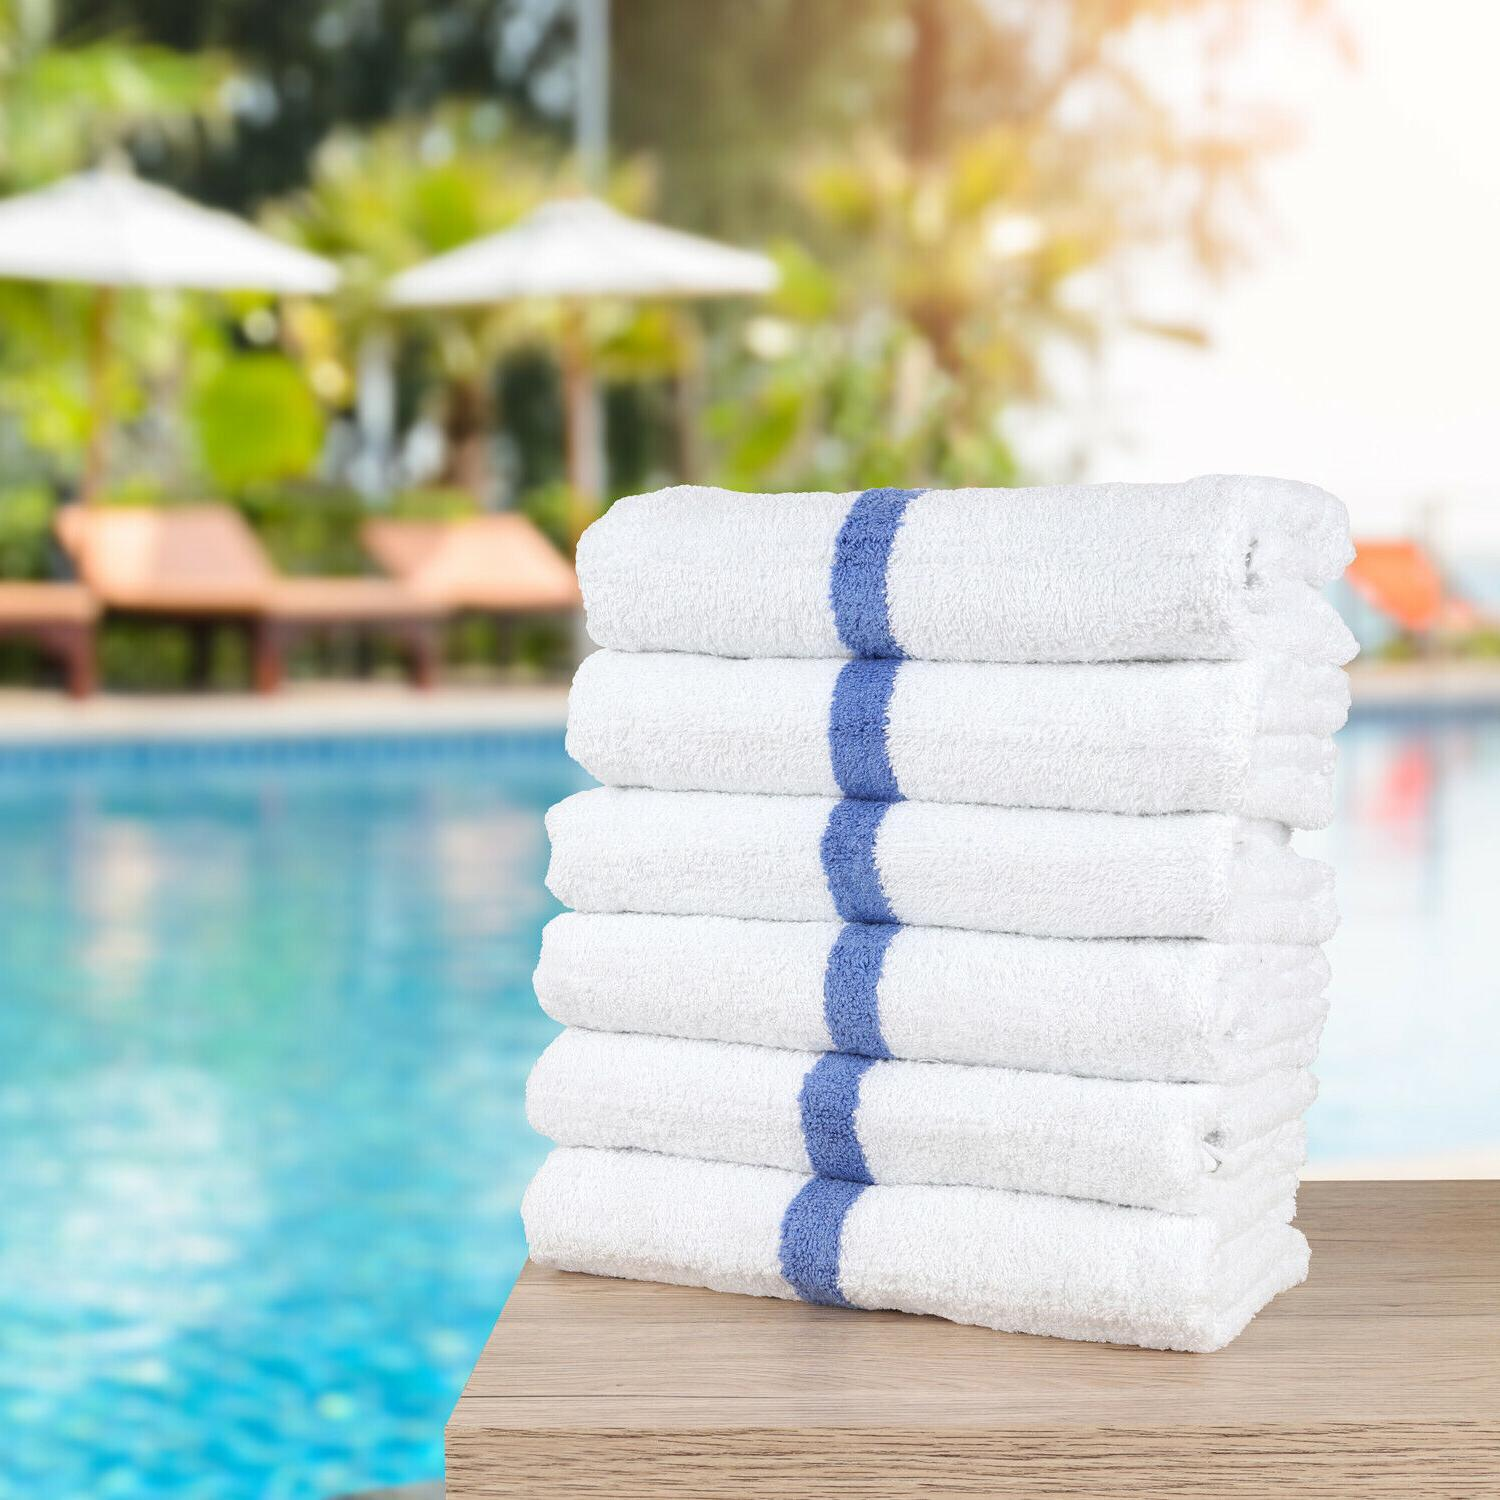 Striped Cotton Towels - Value 12 Pack - 22 44 - White w/ Blue